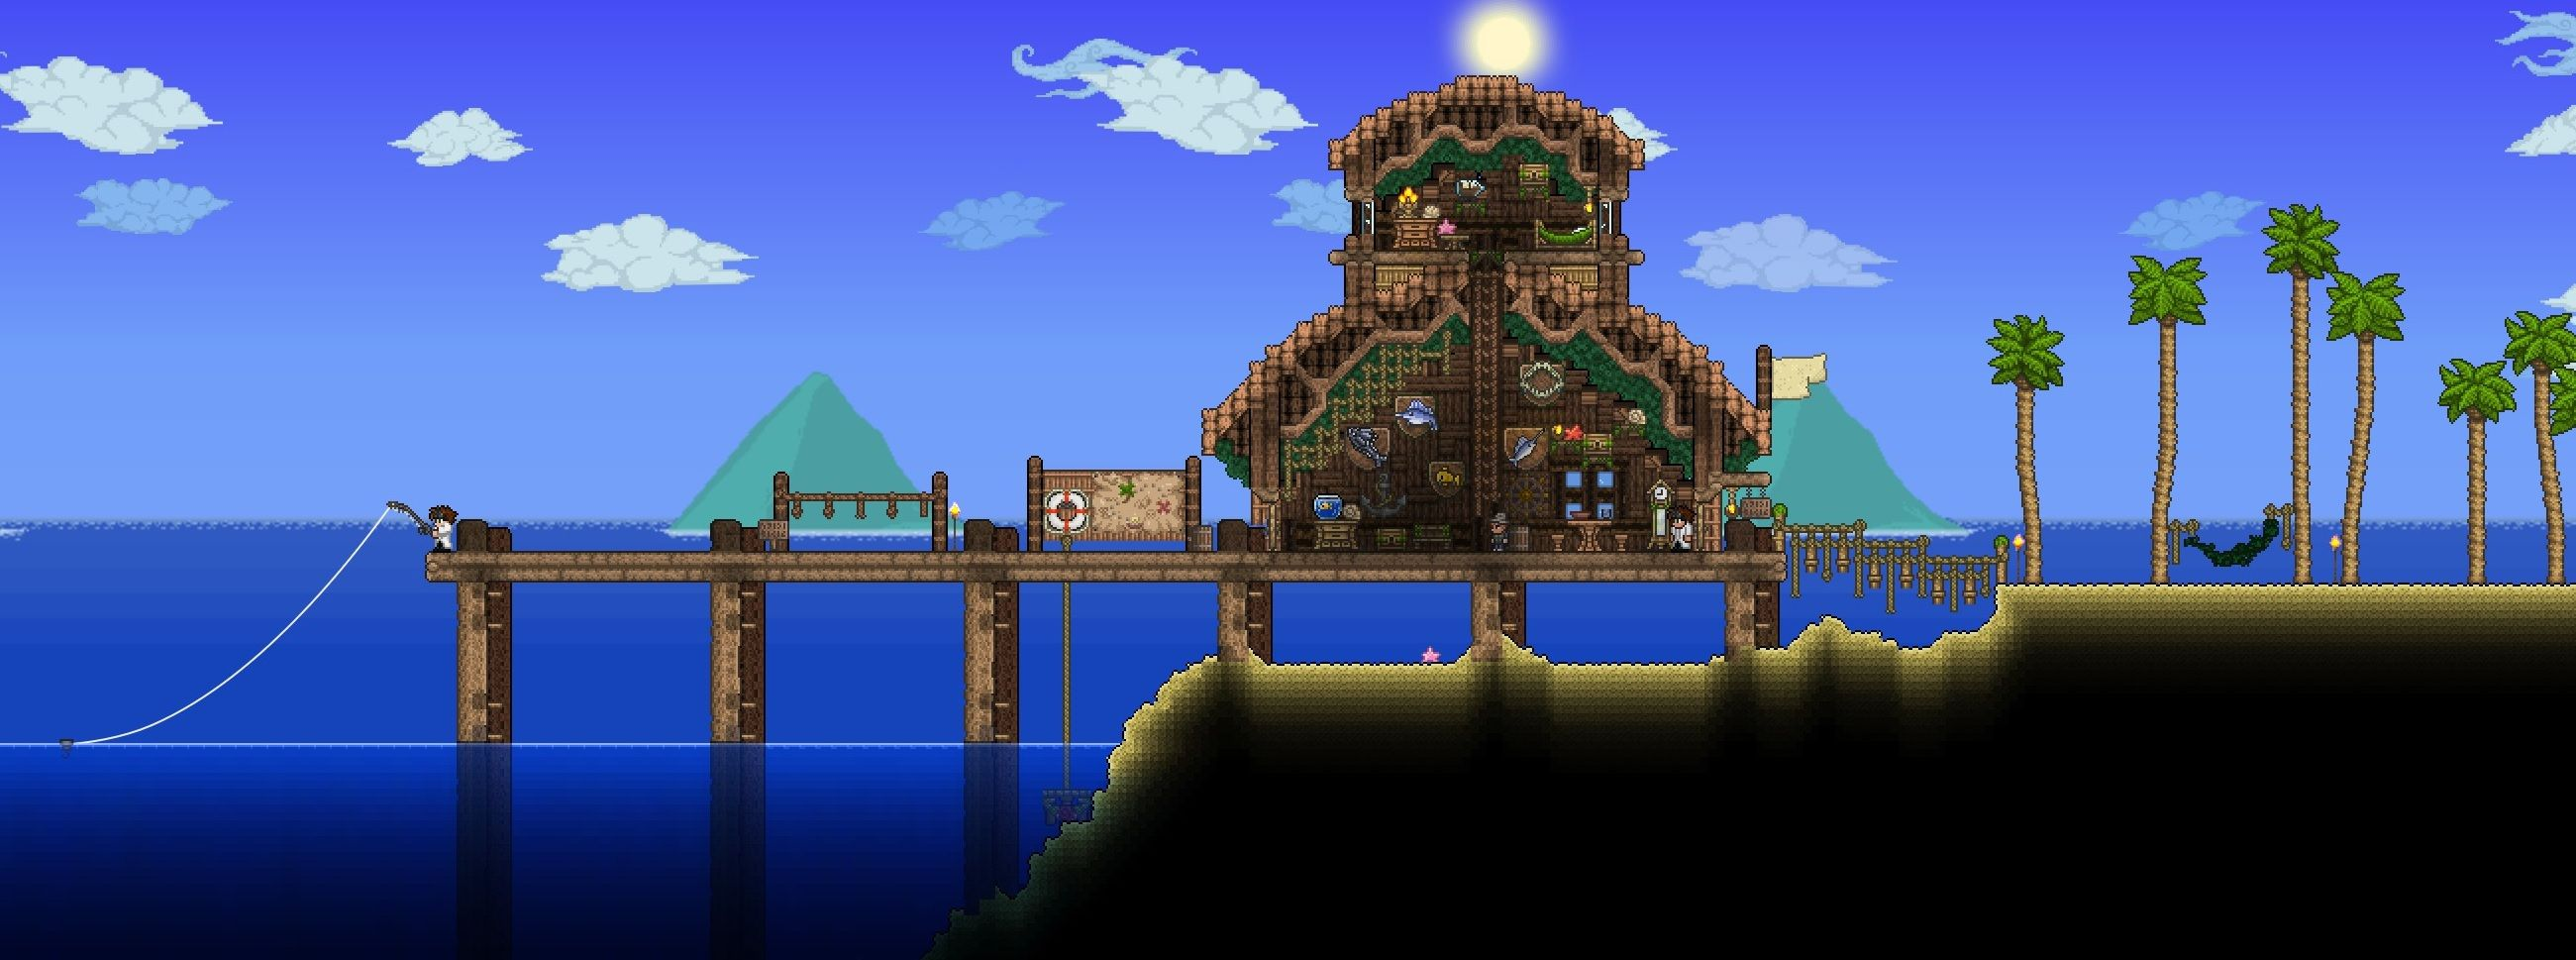 terraria angler house ideas with 520236194432900154 on 50806302023408623 moreover Fox945 likewise Data Ids Terraria Wiki Fandom Powered By Wikia also 503418064575434346 together with 520236194432900154.